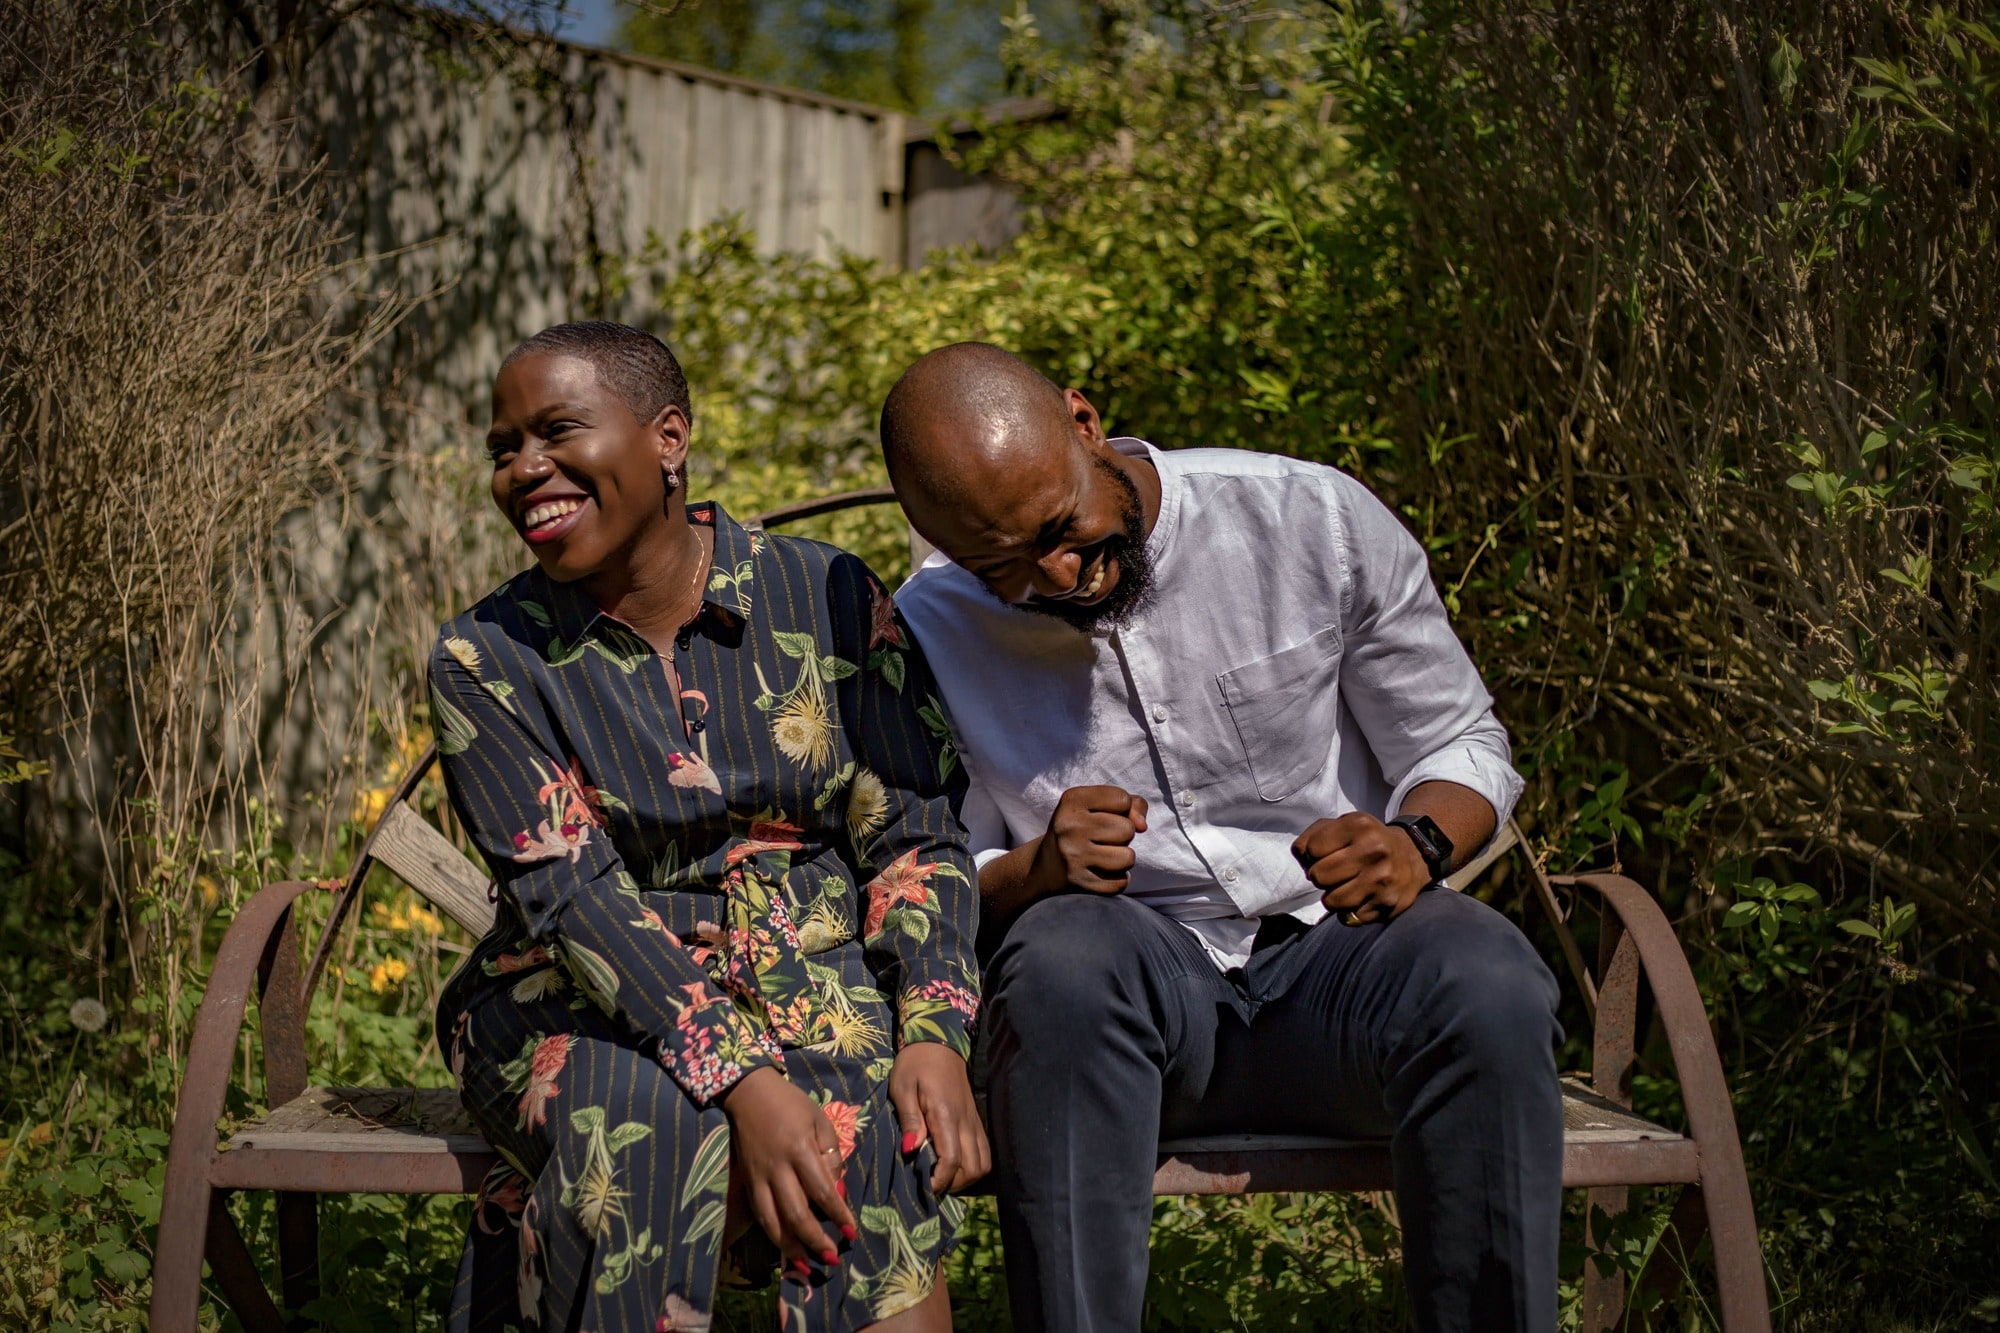 black woman and man sitting and laughing together